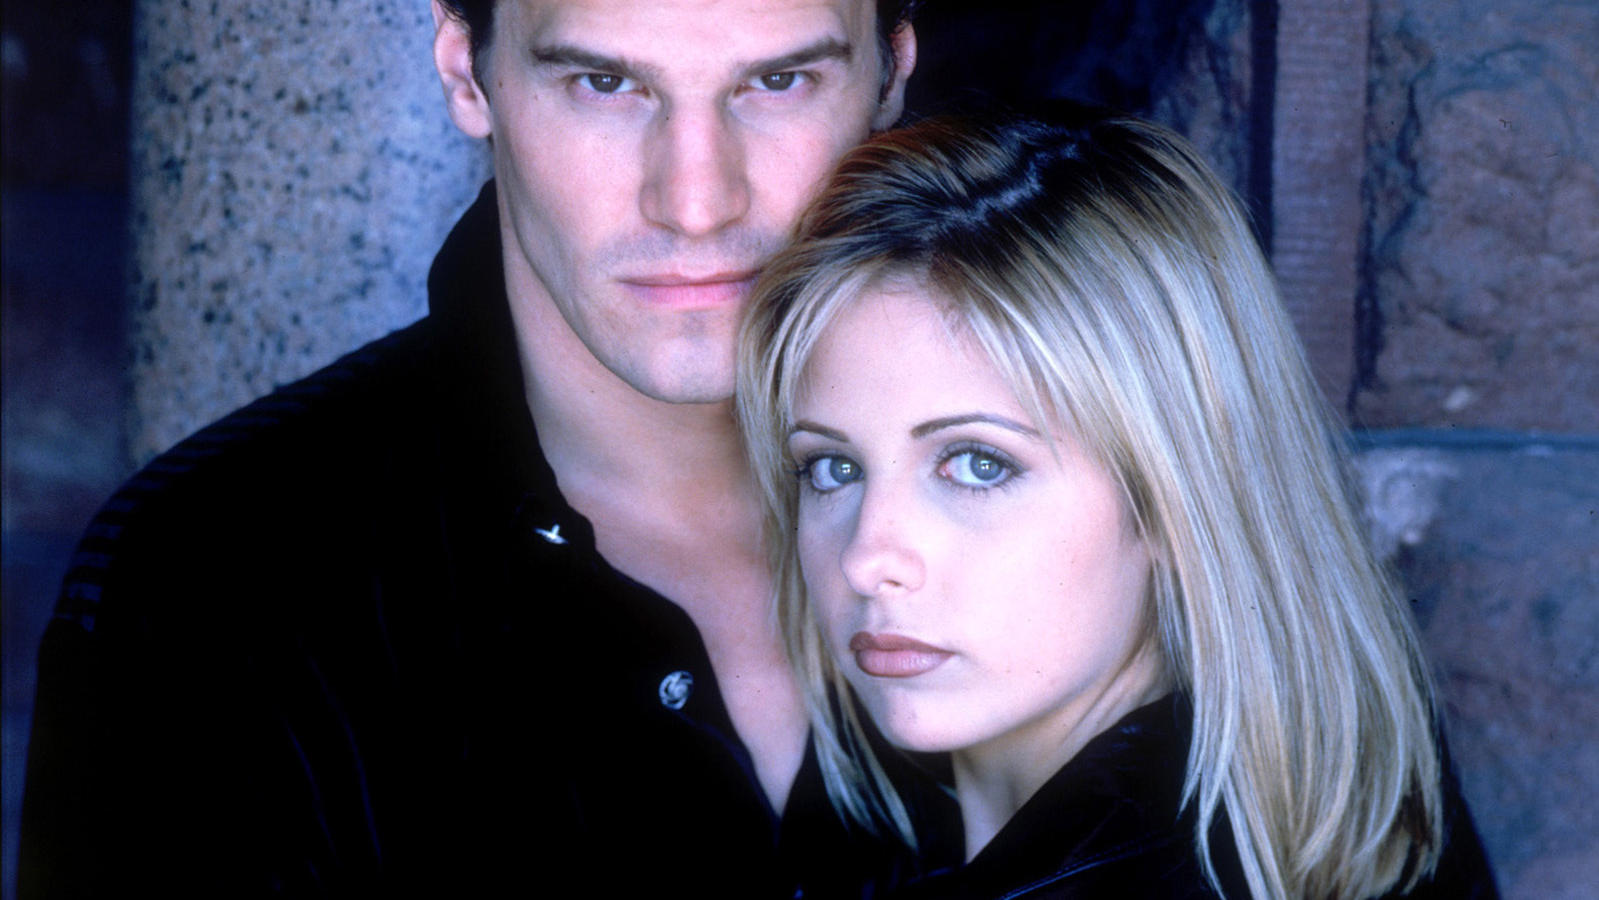 David Boreanz als Angel, Sarah Michelle Gellar als Buffy